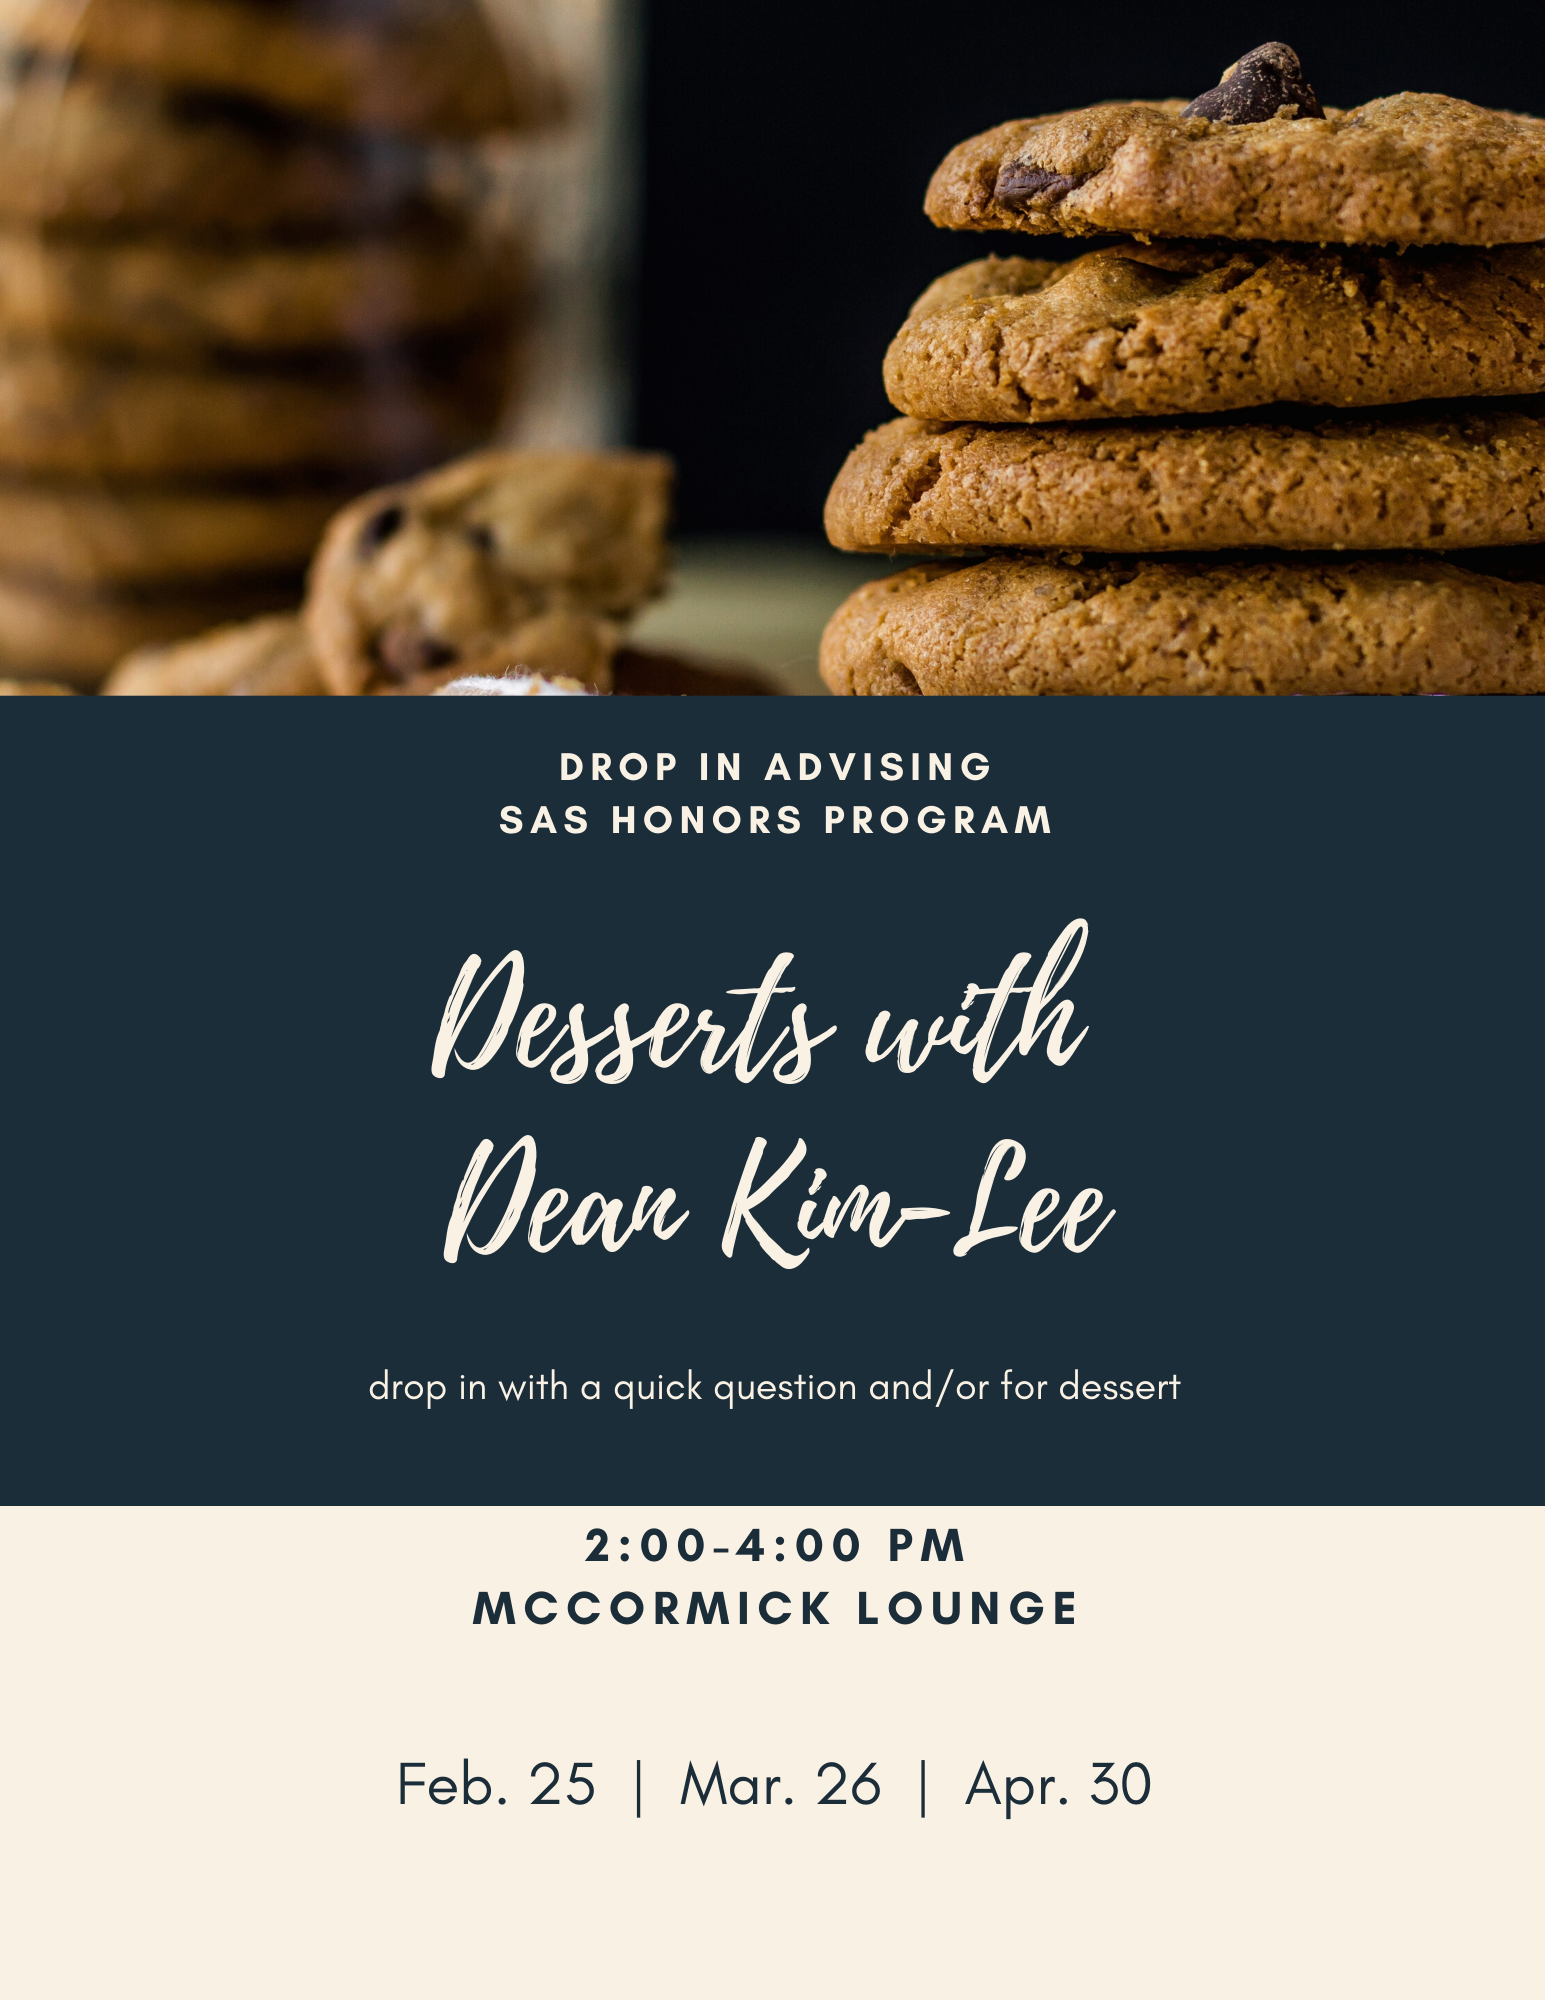 Spring 20 Update Desserts with Dean Kim Lee